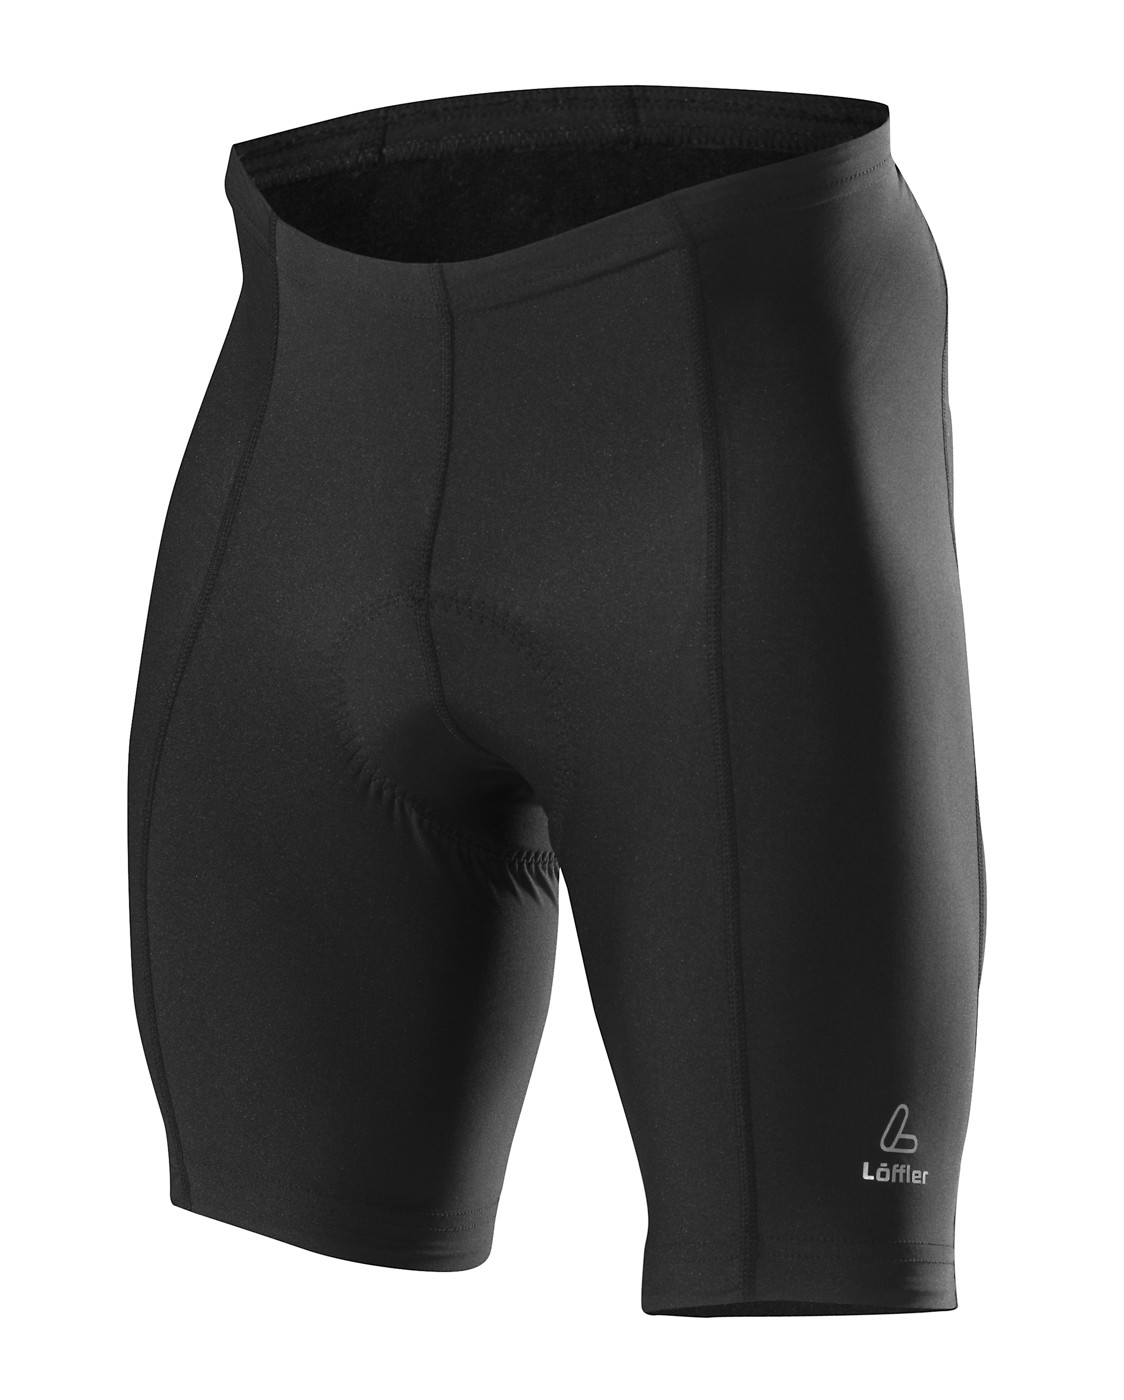 LÖFFLER M BIKE TIGHTS BASIC - Herren